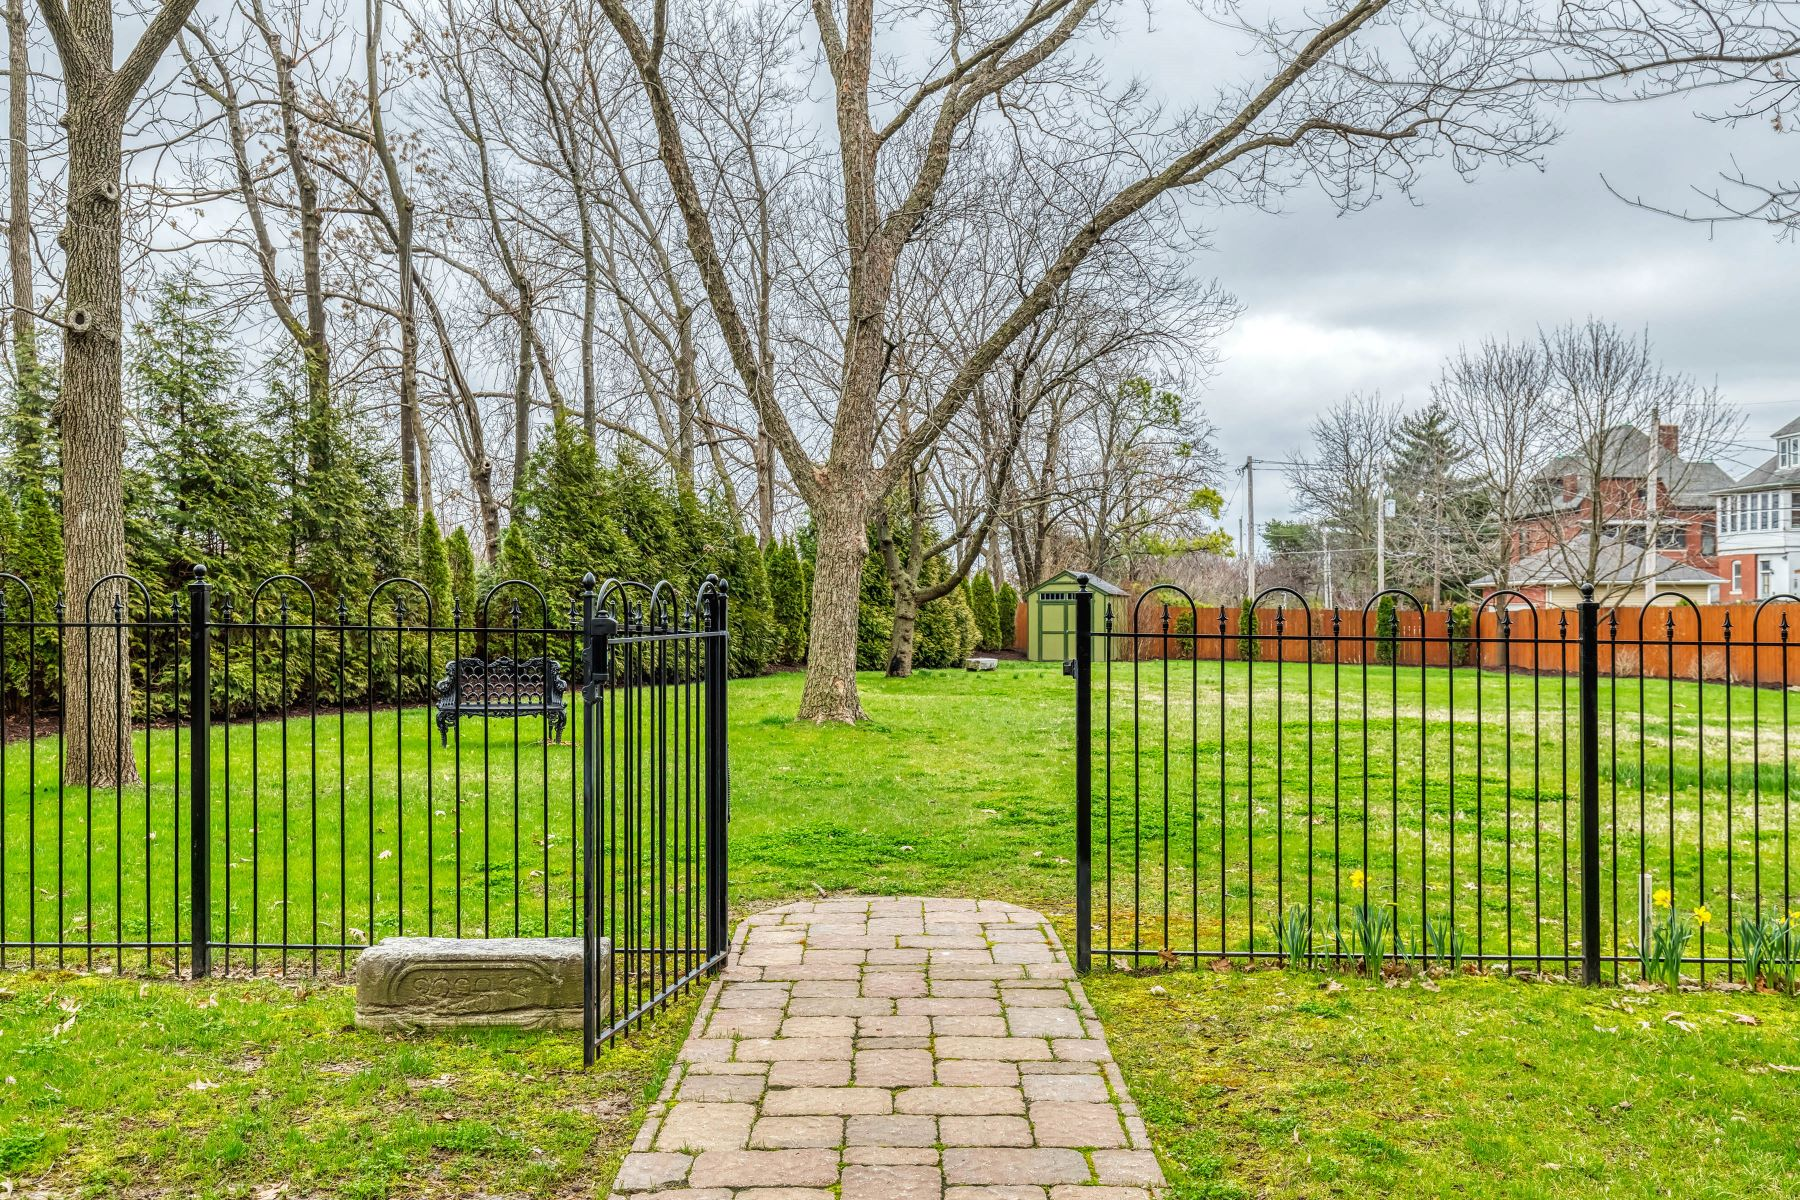 Property for Sale at Fenced and Landscaped Lot 3228 Copelin Avenue St. Louis, Missouri 63104 United States